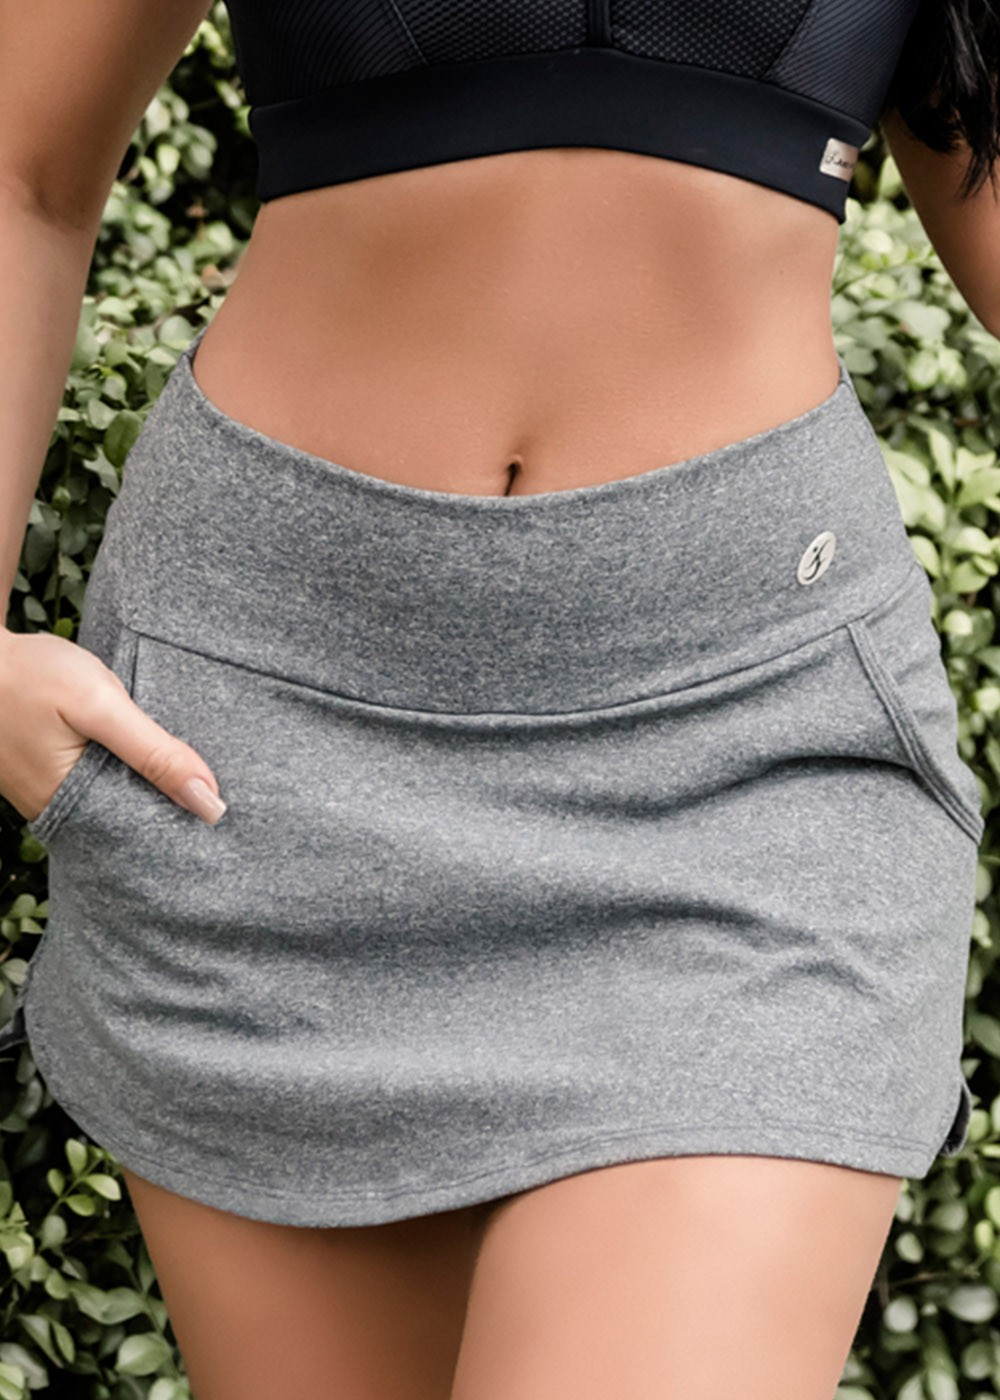 SHORTS SAIA FIT UP JUS FIT - MESCLA